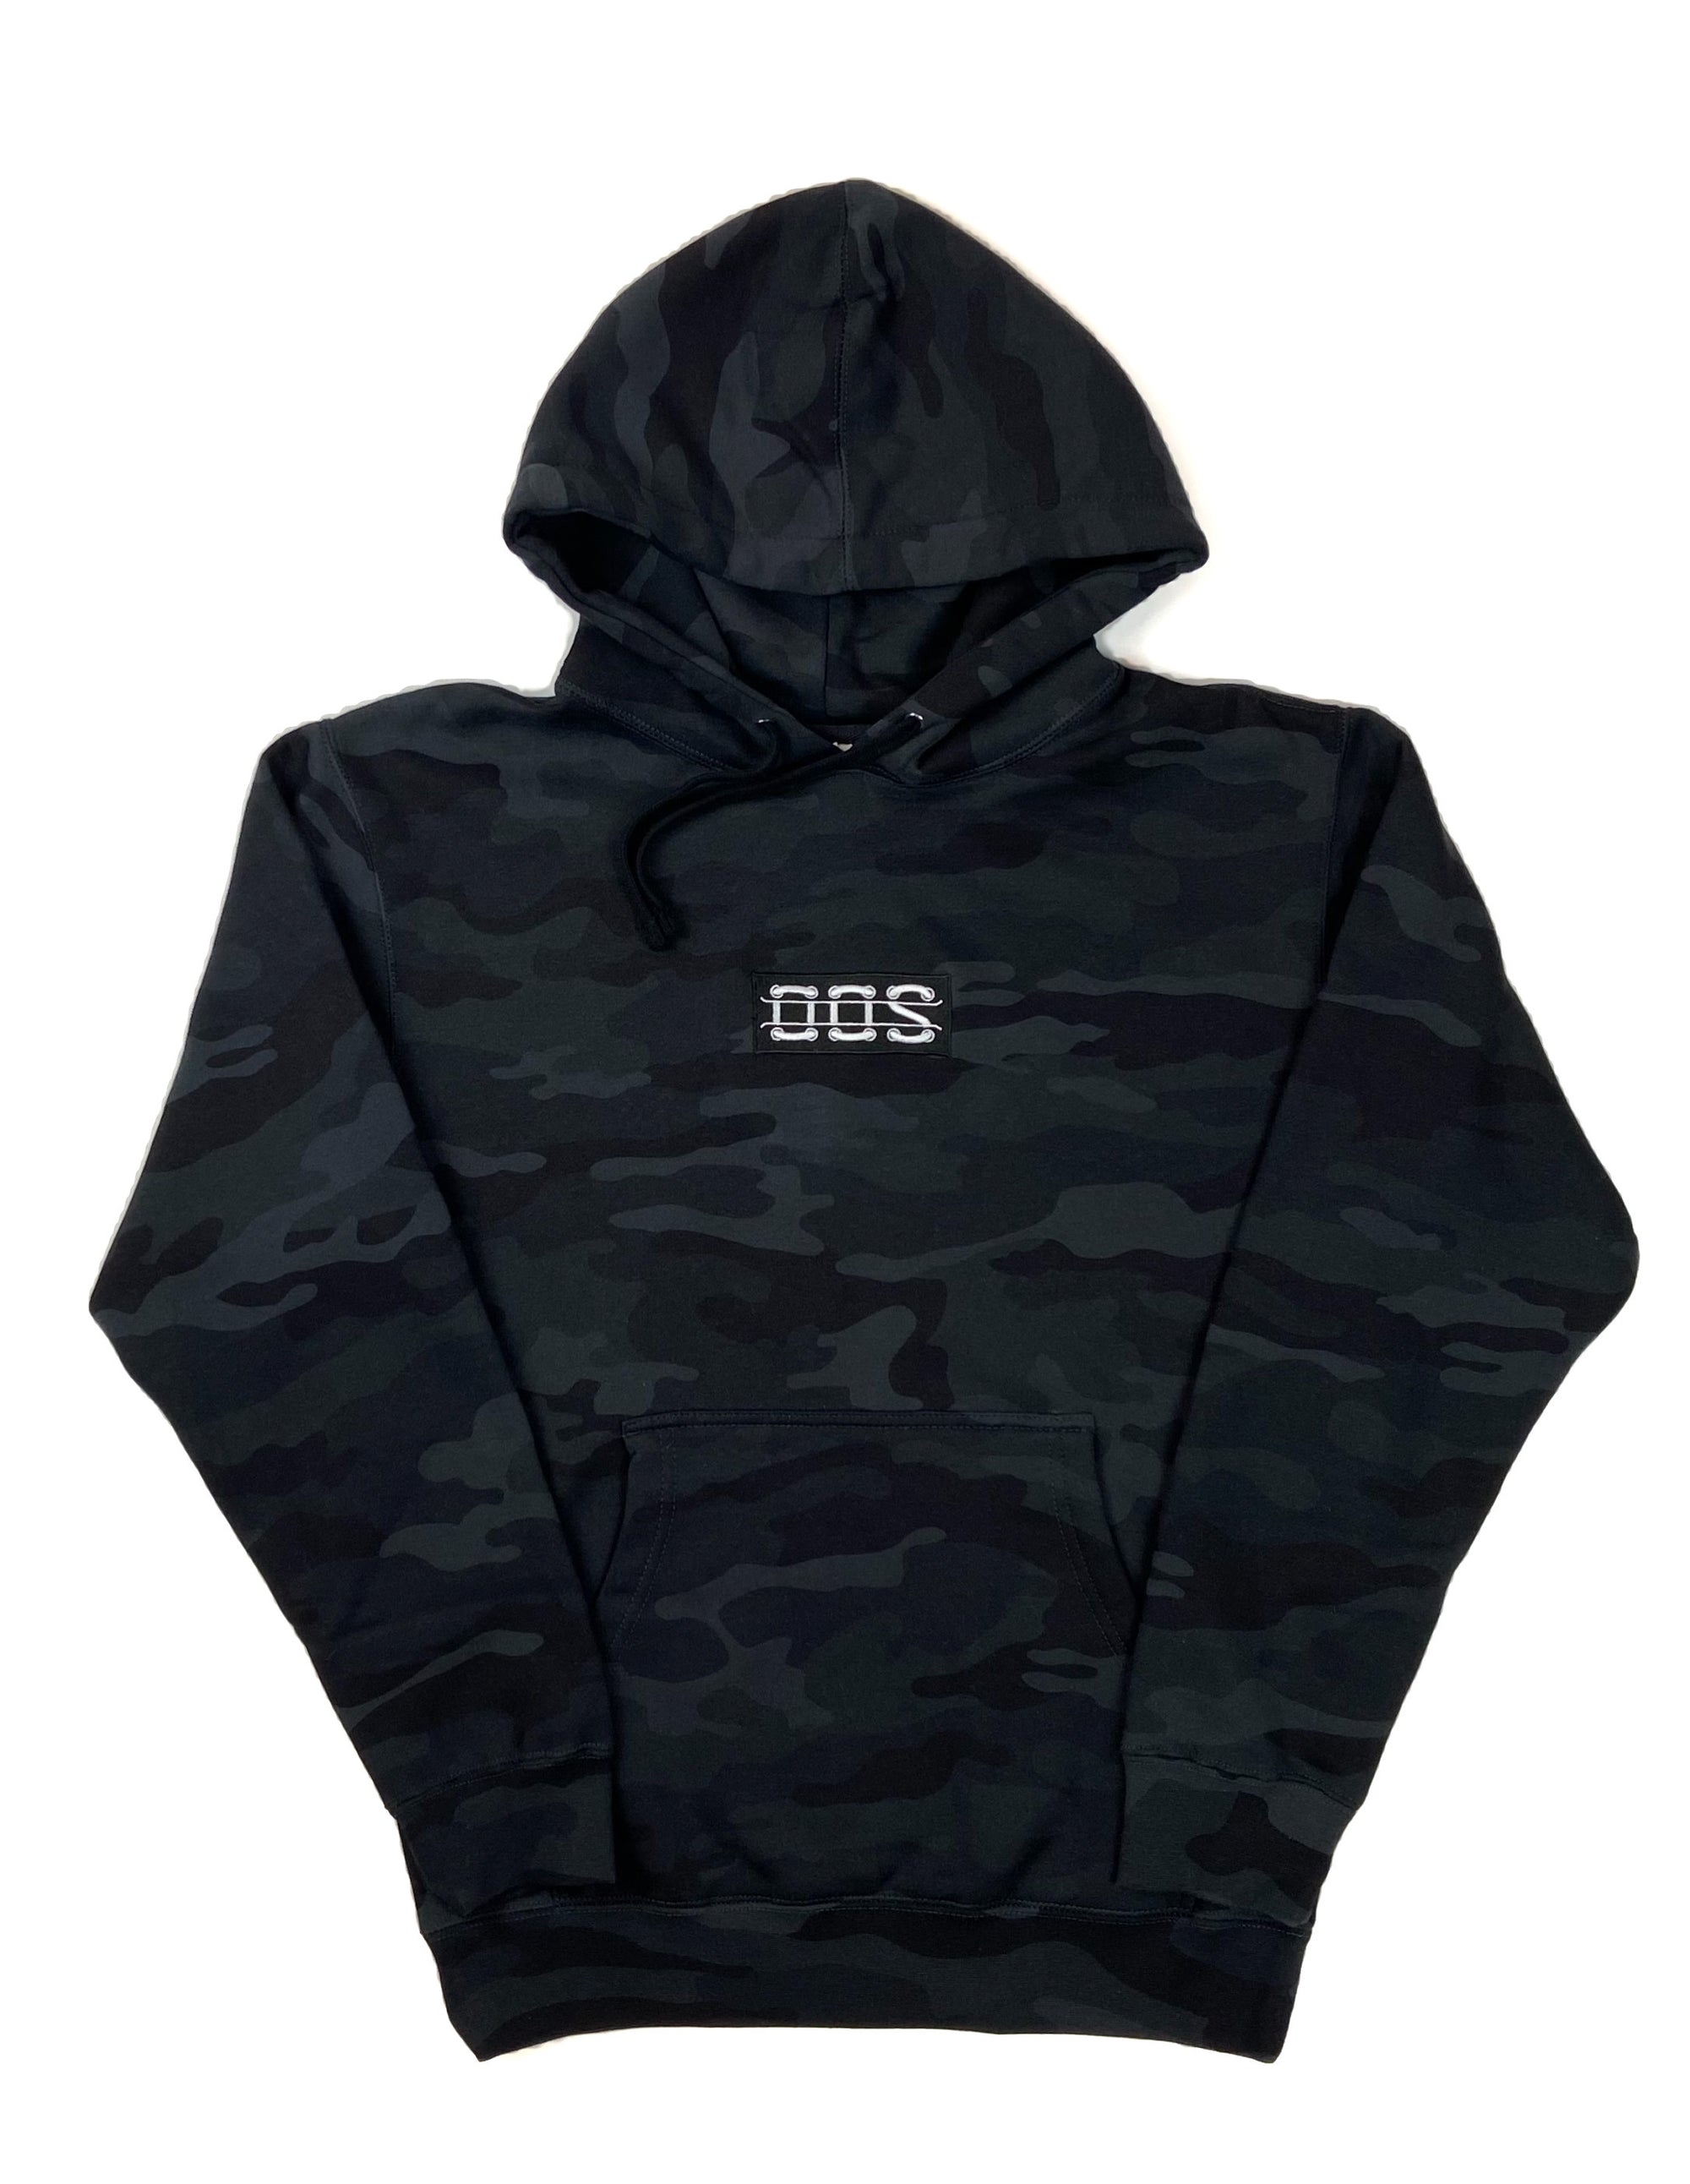 OOS Box Logo Embroidered Hoodie - Black Camo